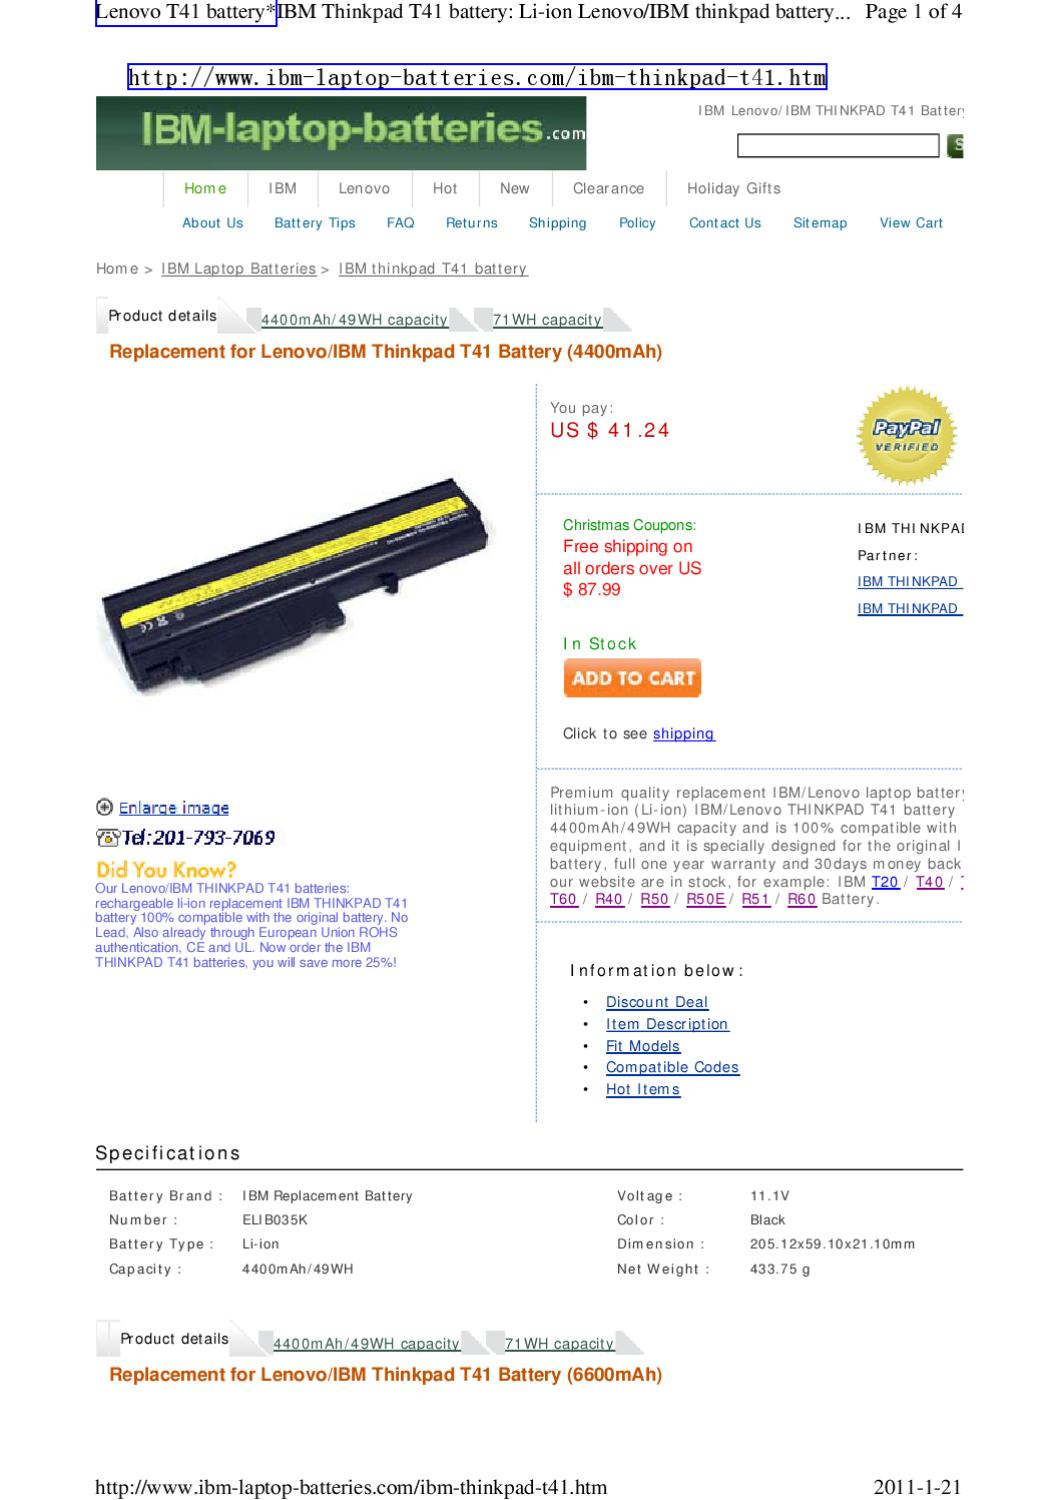 Lenovo T41 Battery/IBM THINKPAD T41 battery on sale by